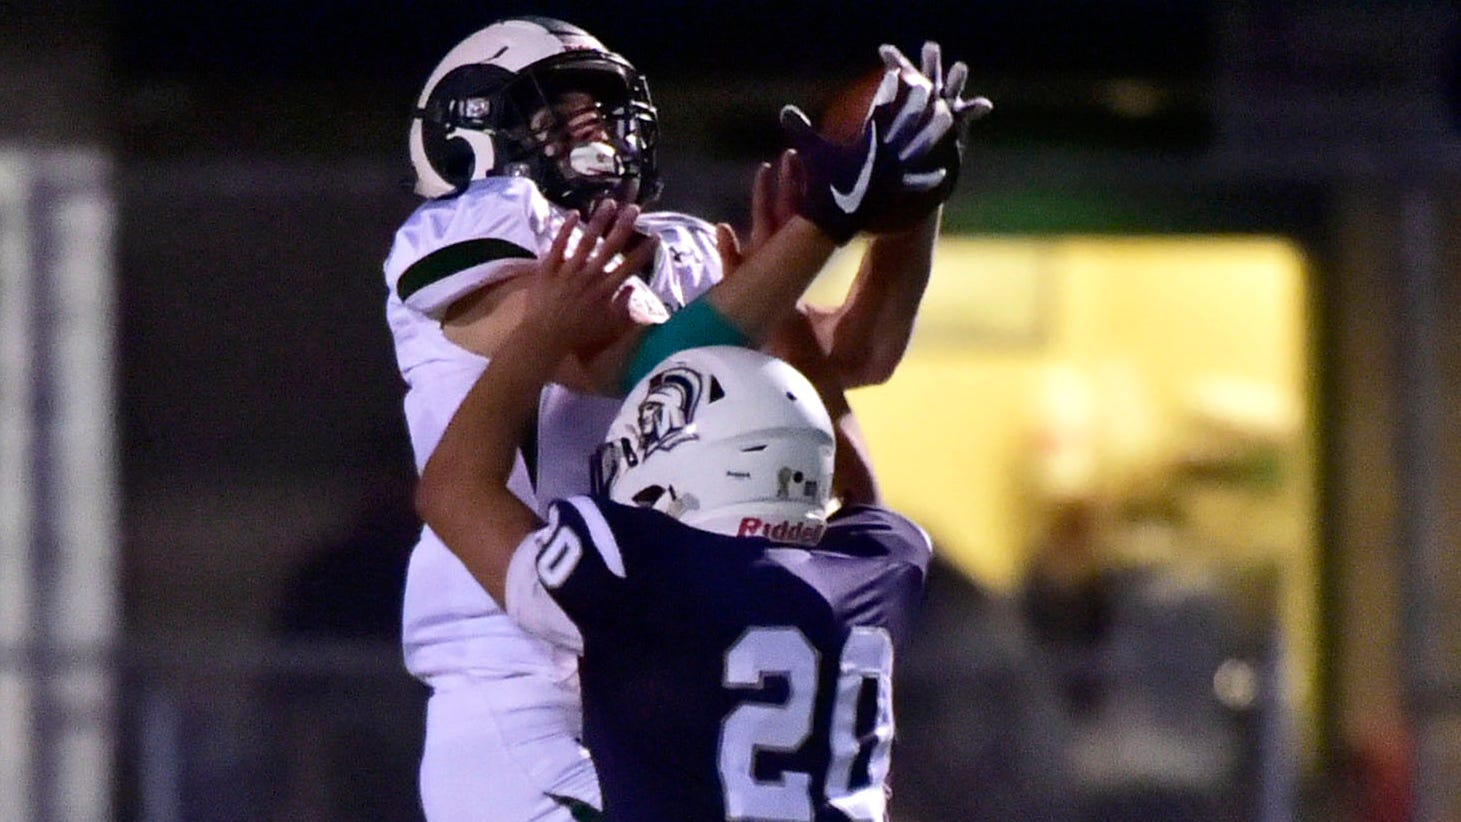 Central Dauphin's Nick Chimienti (3) catches a long pass as Chambersburg's Kyere Morton (20) defends. Chambersburg lost to Central Dauphin in PIAA football on Friday, Oct. 19, 2018.